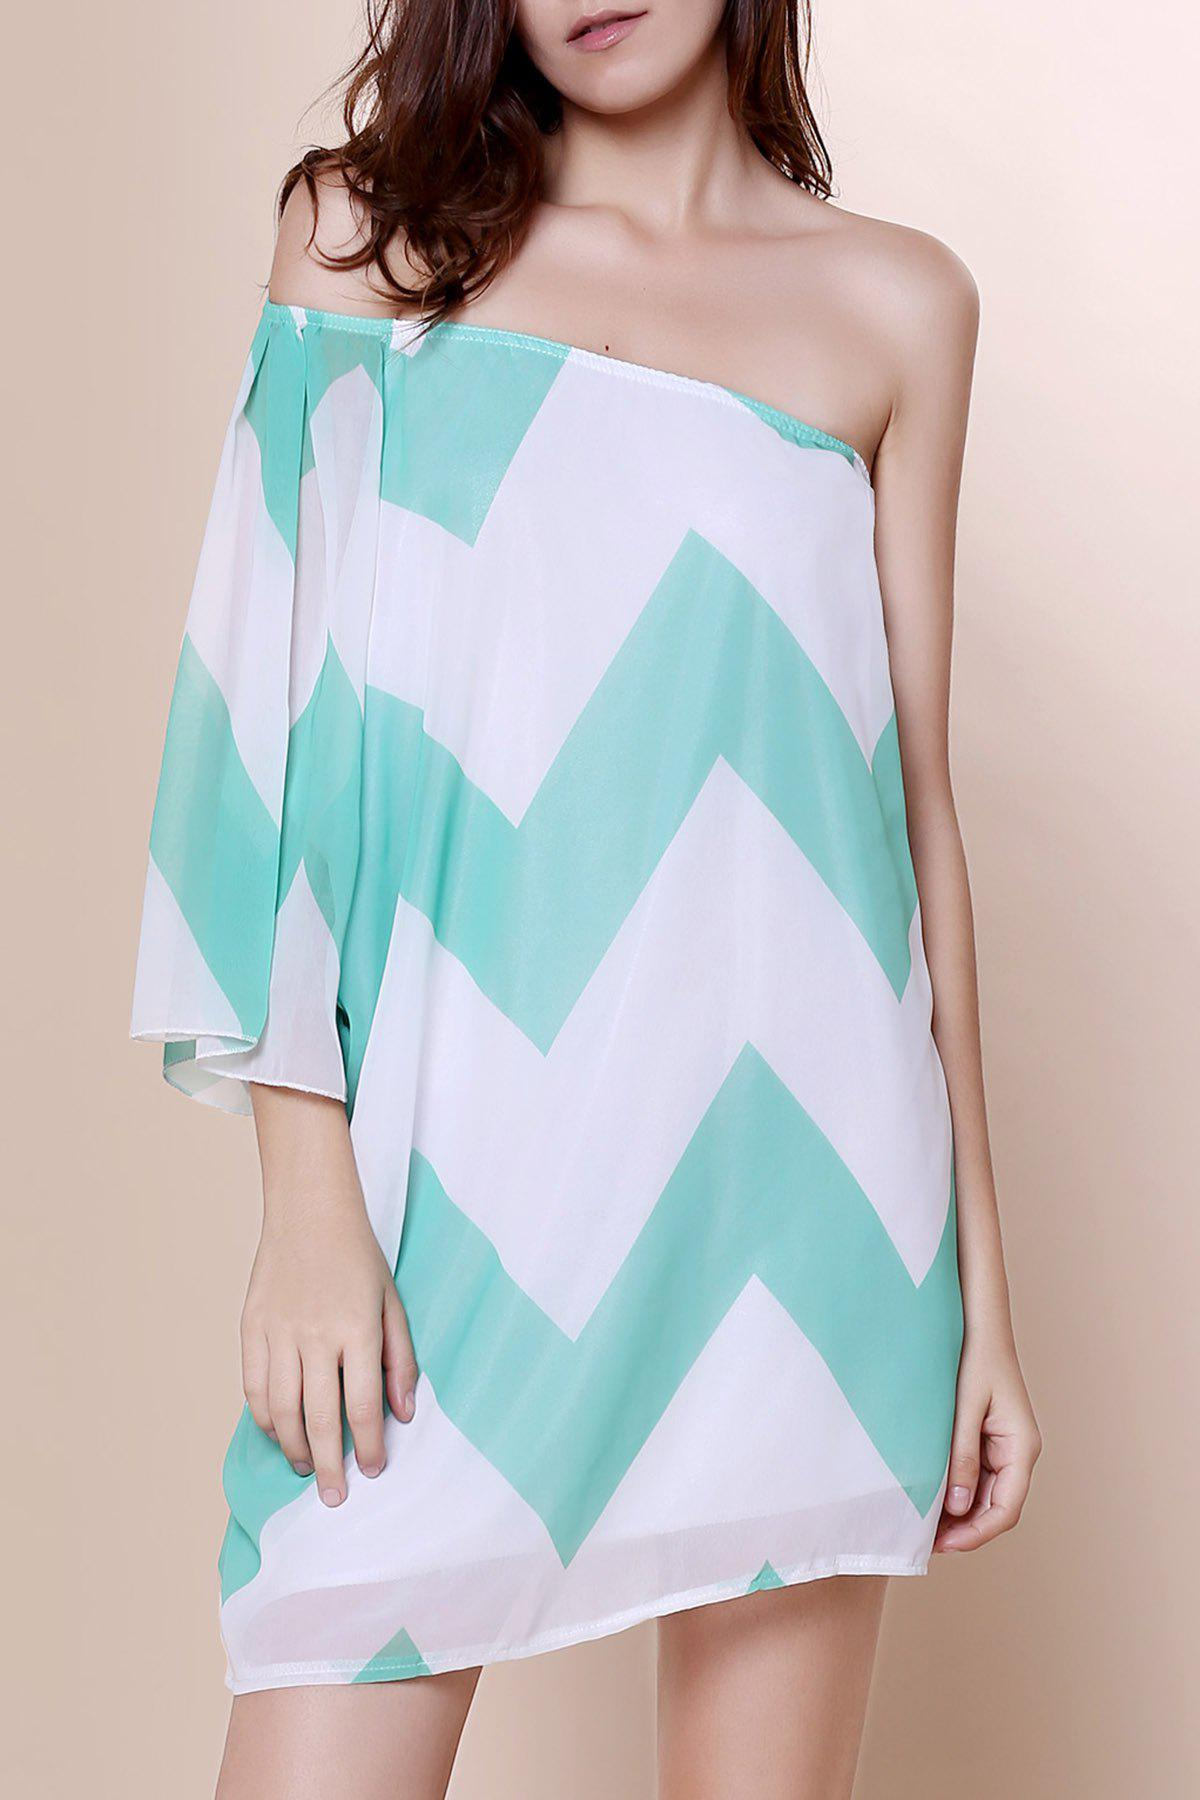 Attractive One-Shoulder Chevron Printed 3/4 Sleeve Chiffon Dress For Women - BLUE XL